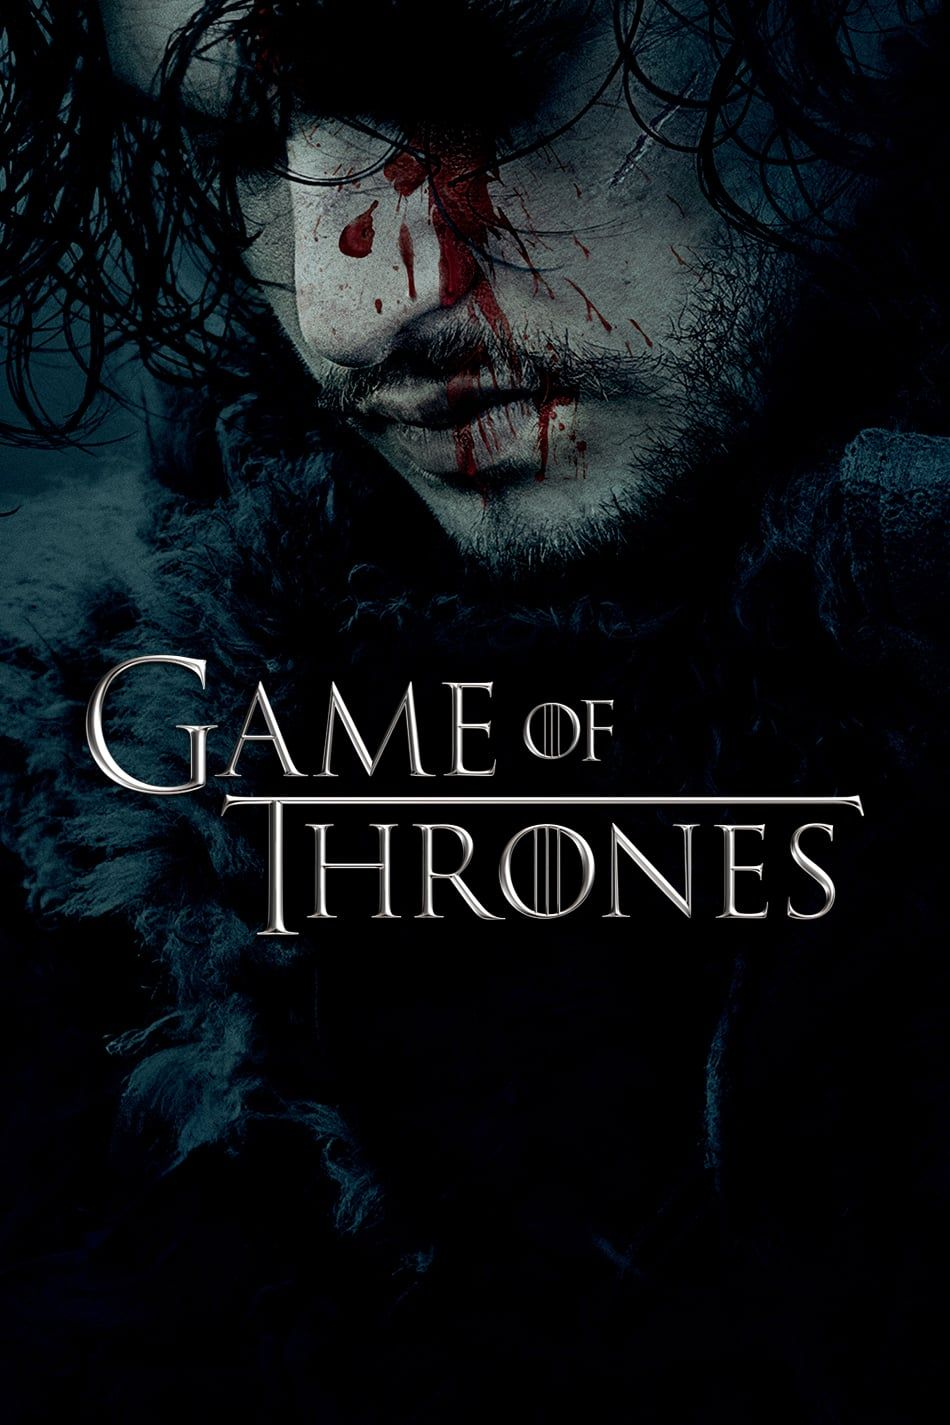 Game Of Thrones Tv Series Full Episodes Hd Quality Enjoy Full Episodes Click Link Below Game Of Thrones Promo Game Of Thrones Poster Hbo Game Of Thrones